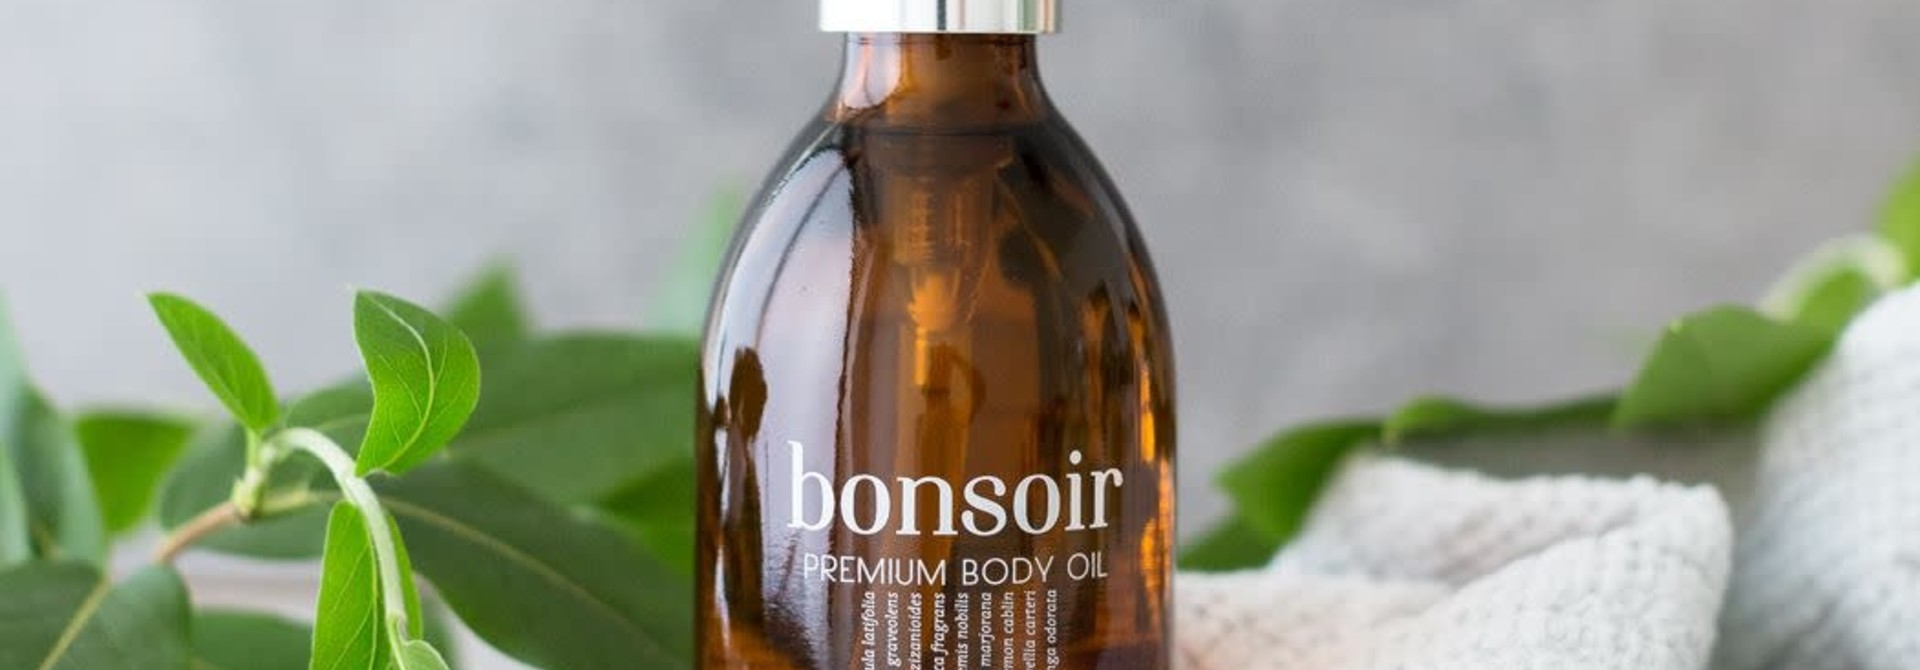 Bonsoir Premium Body Oil